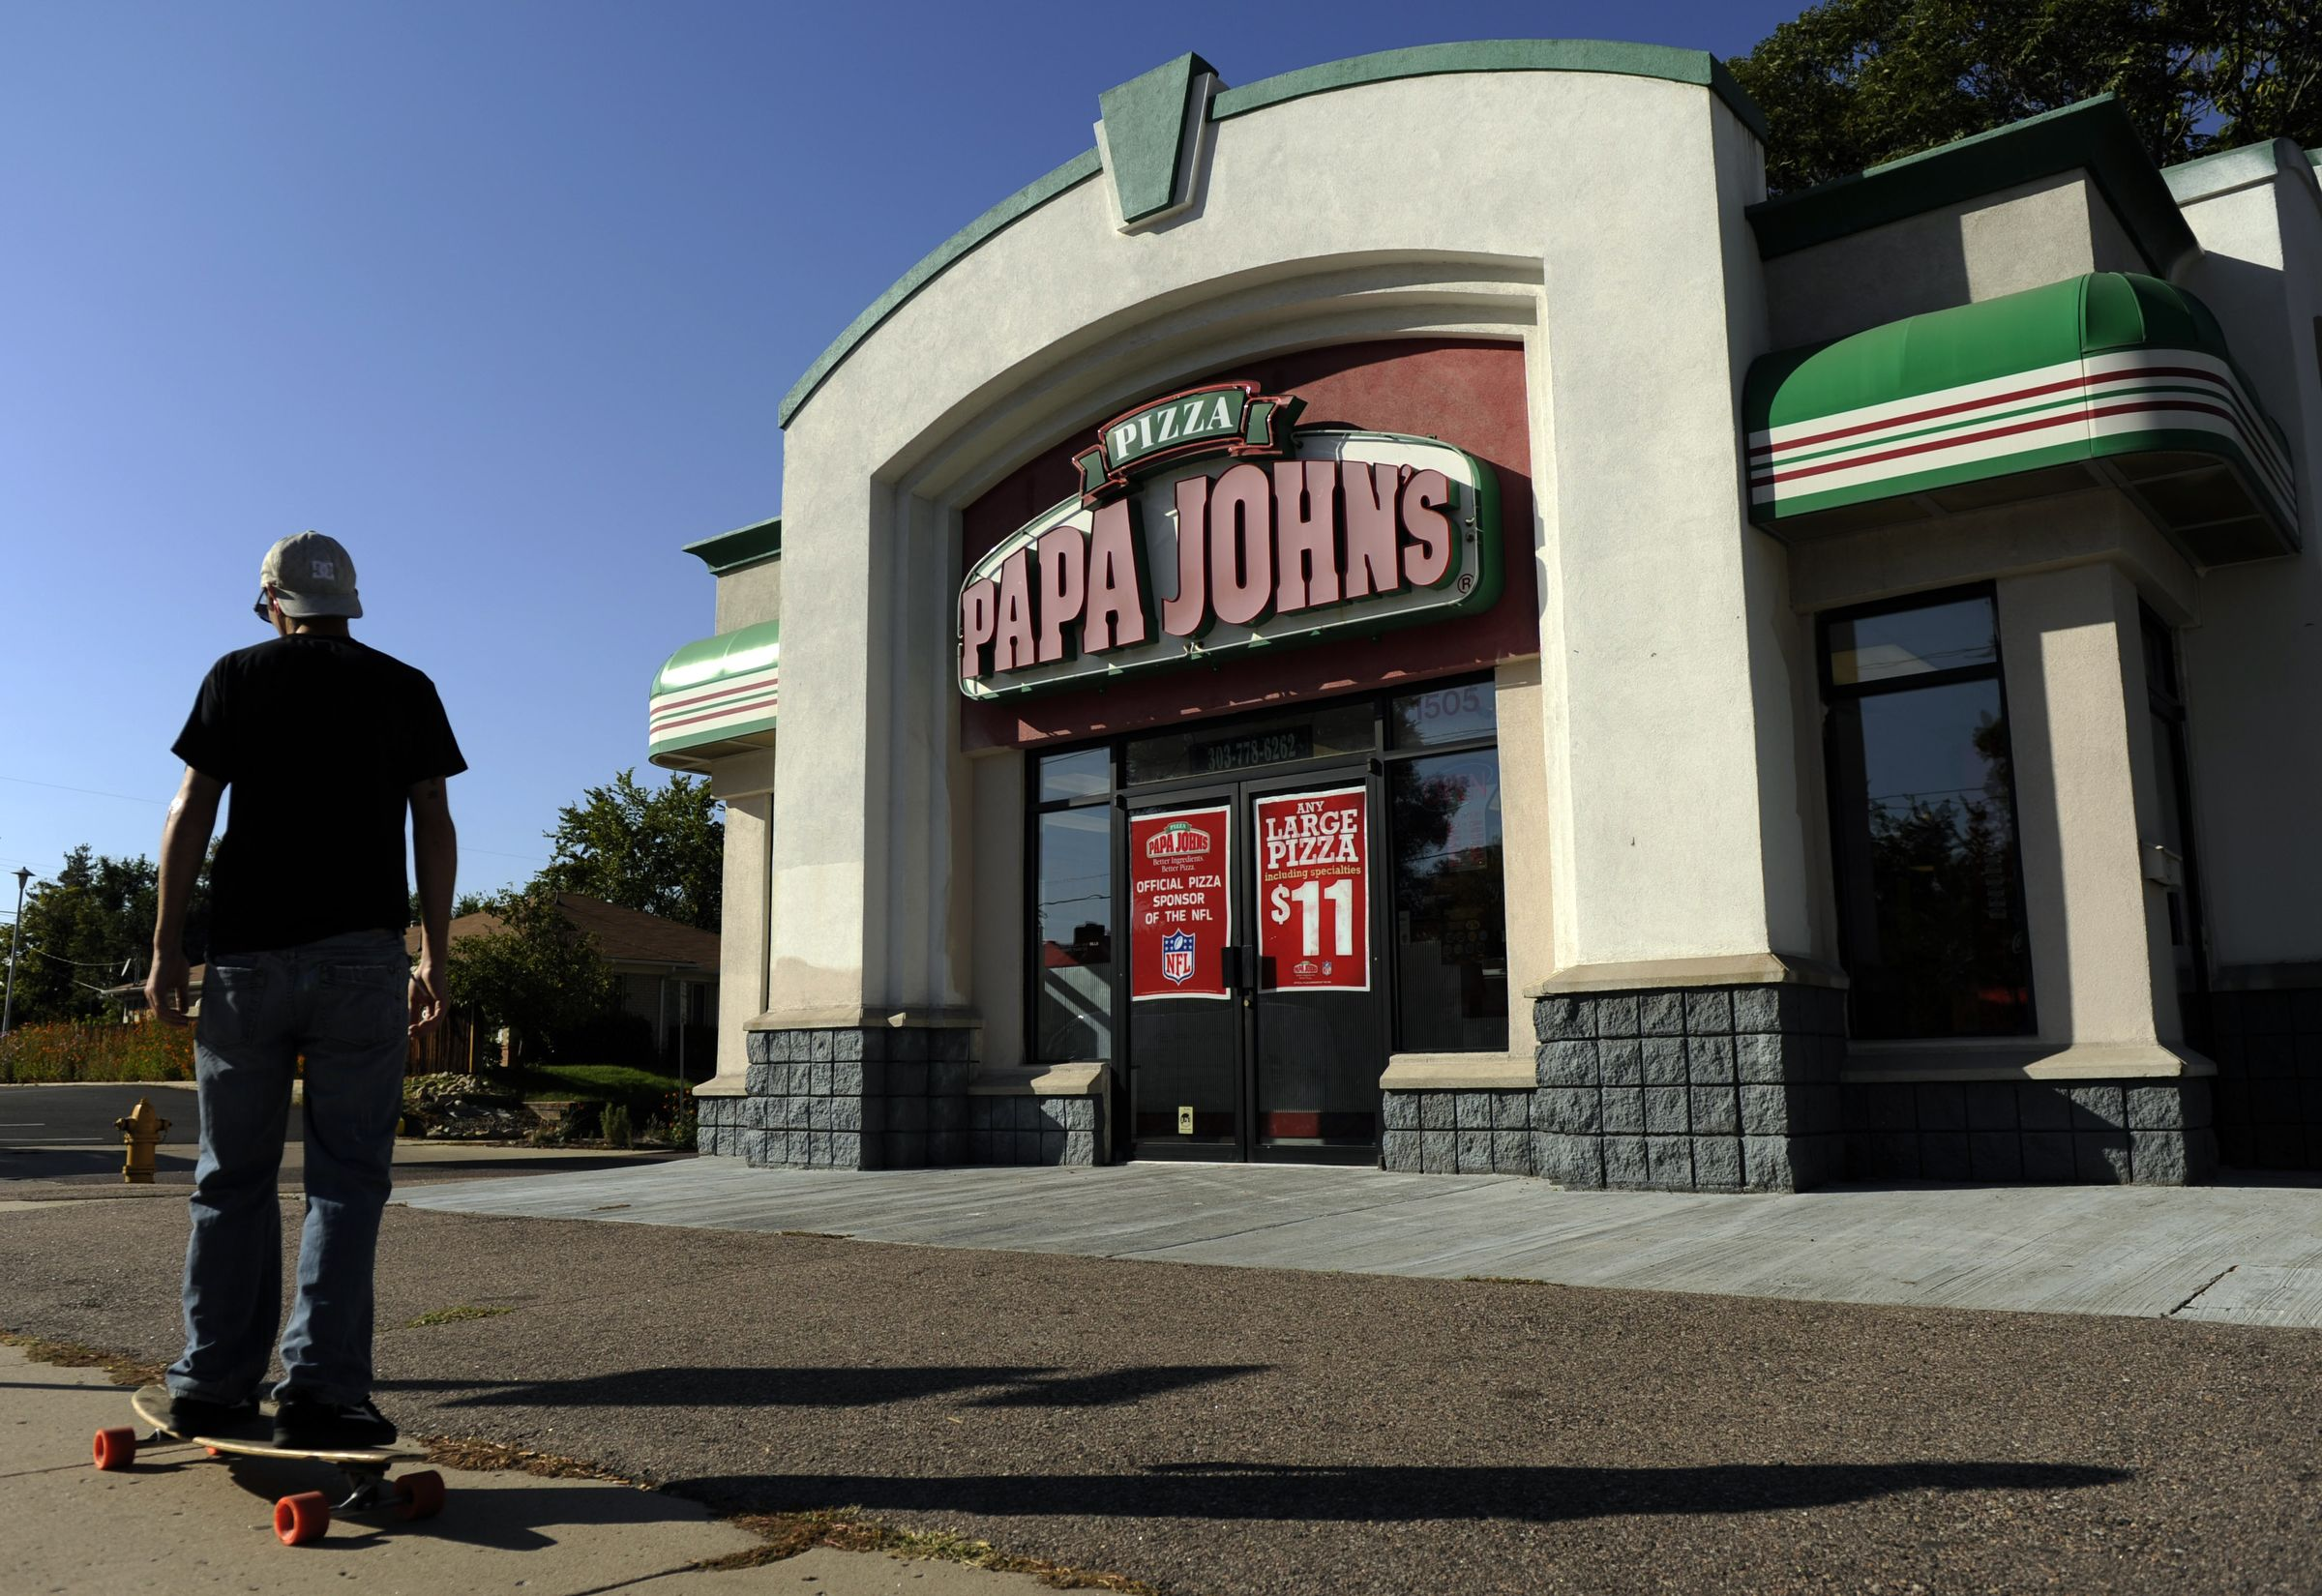 Papa John's will spend additional $80 million on franchisee relief and marketing